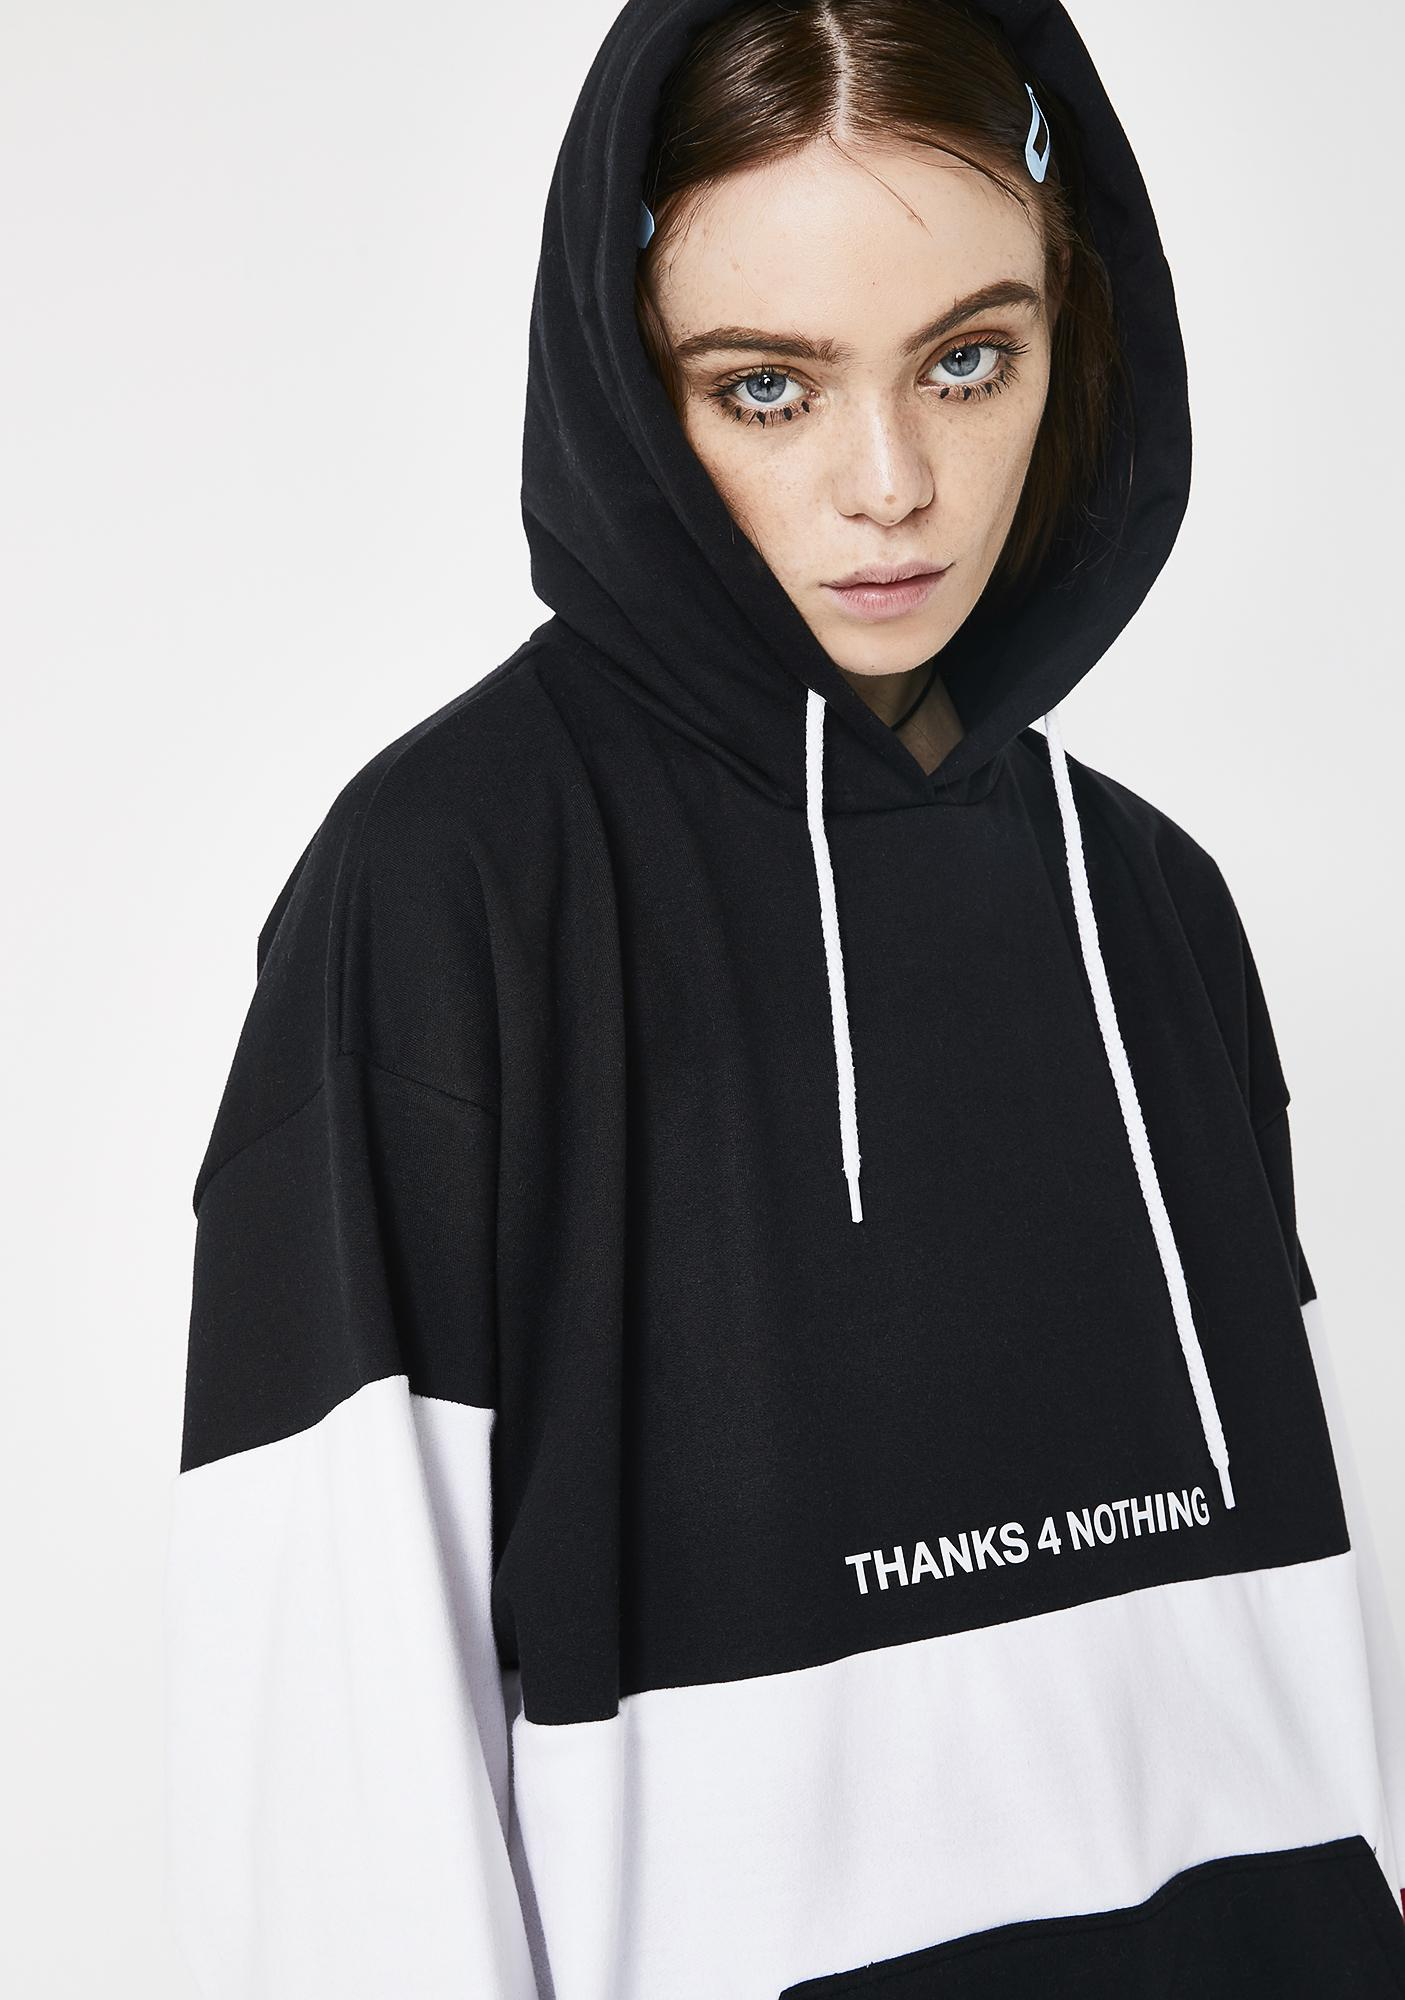 Minga Thanks 4 Nothing Hoodie